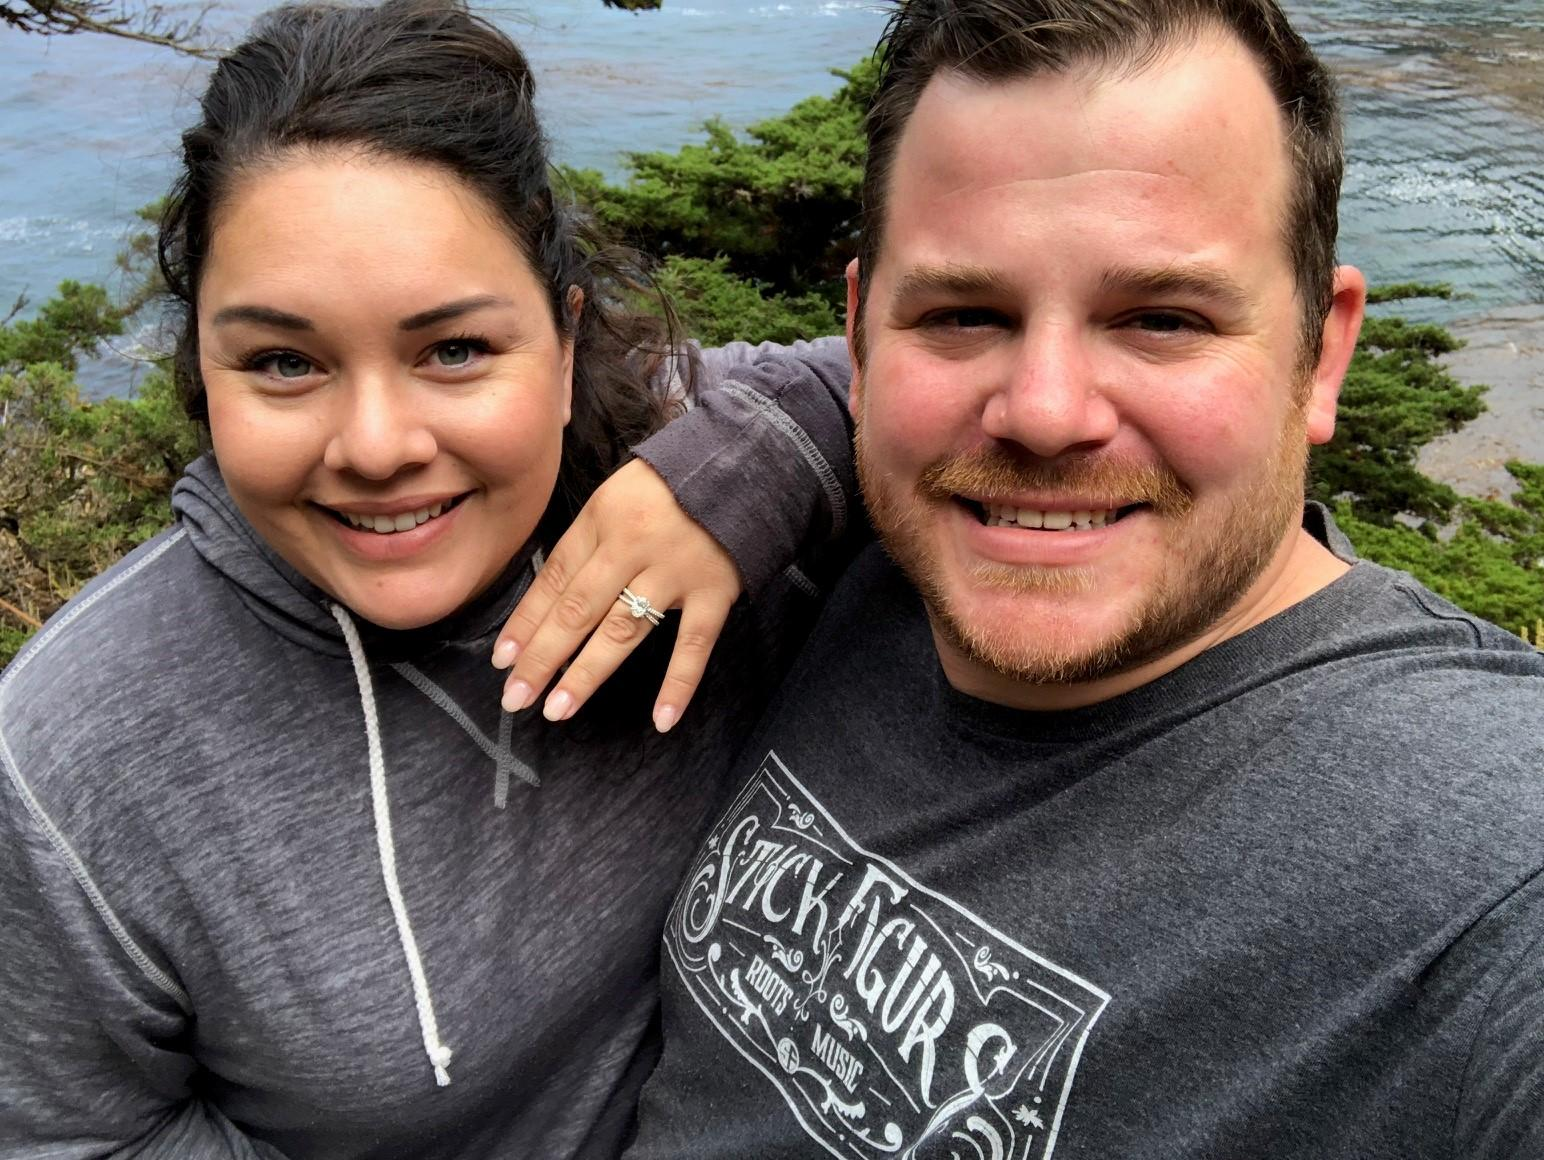 He proposed! Point Lobos Natural Reserve - 09-07-18